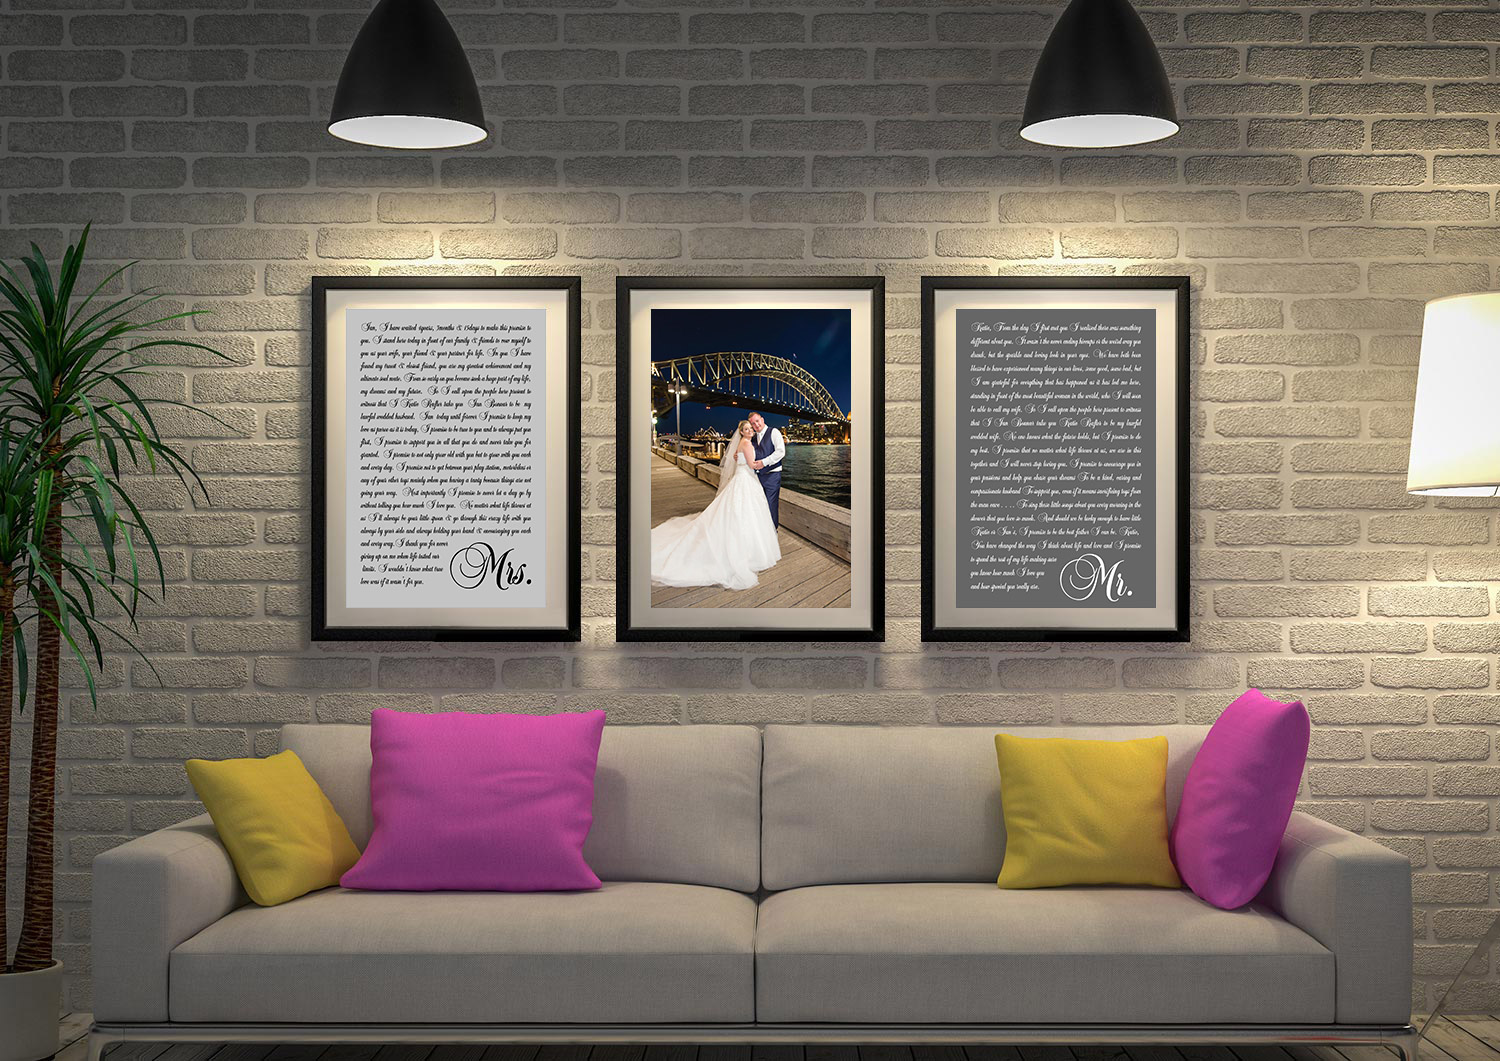 Buy Personalised Triptych Wedding Vows Art | Wedding Vows Art Triptych 2